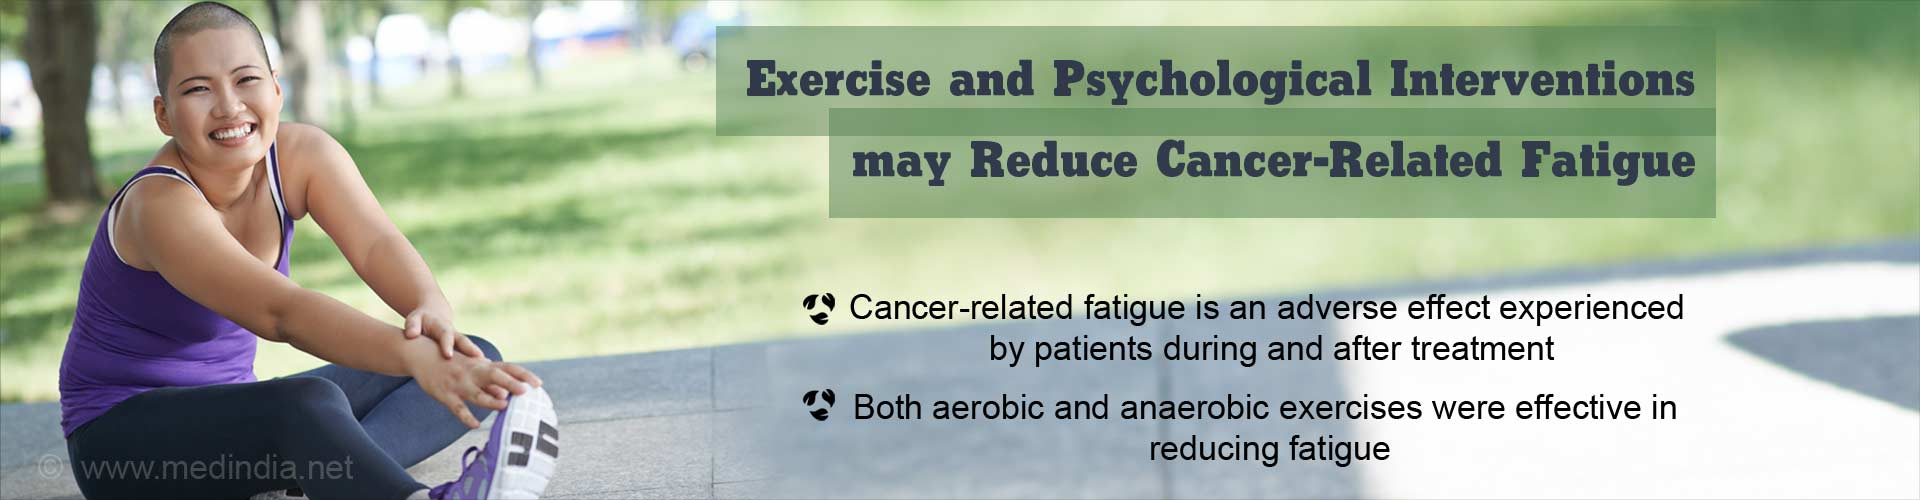 Exercise Helps Cancer Patients Deal With Fatigue